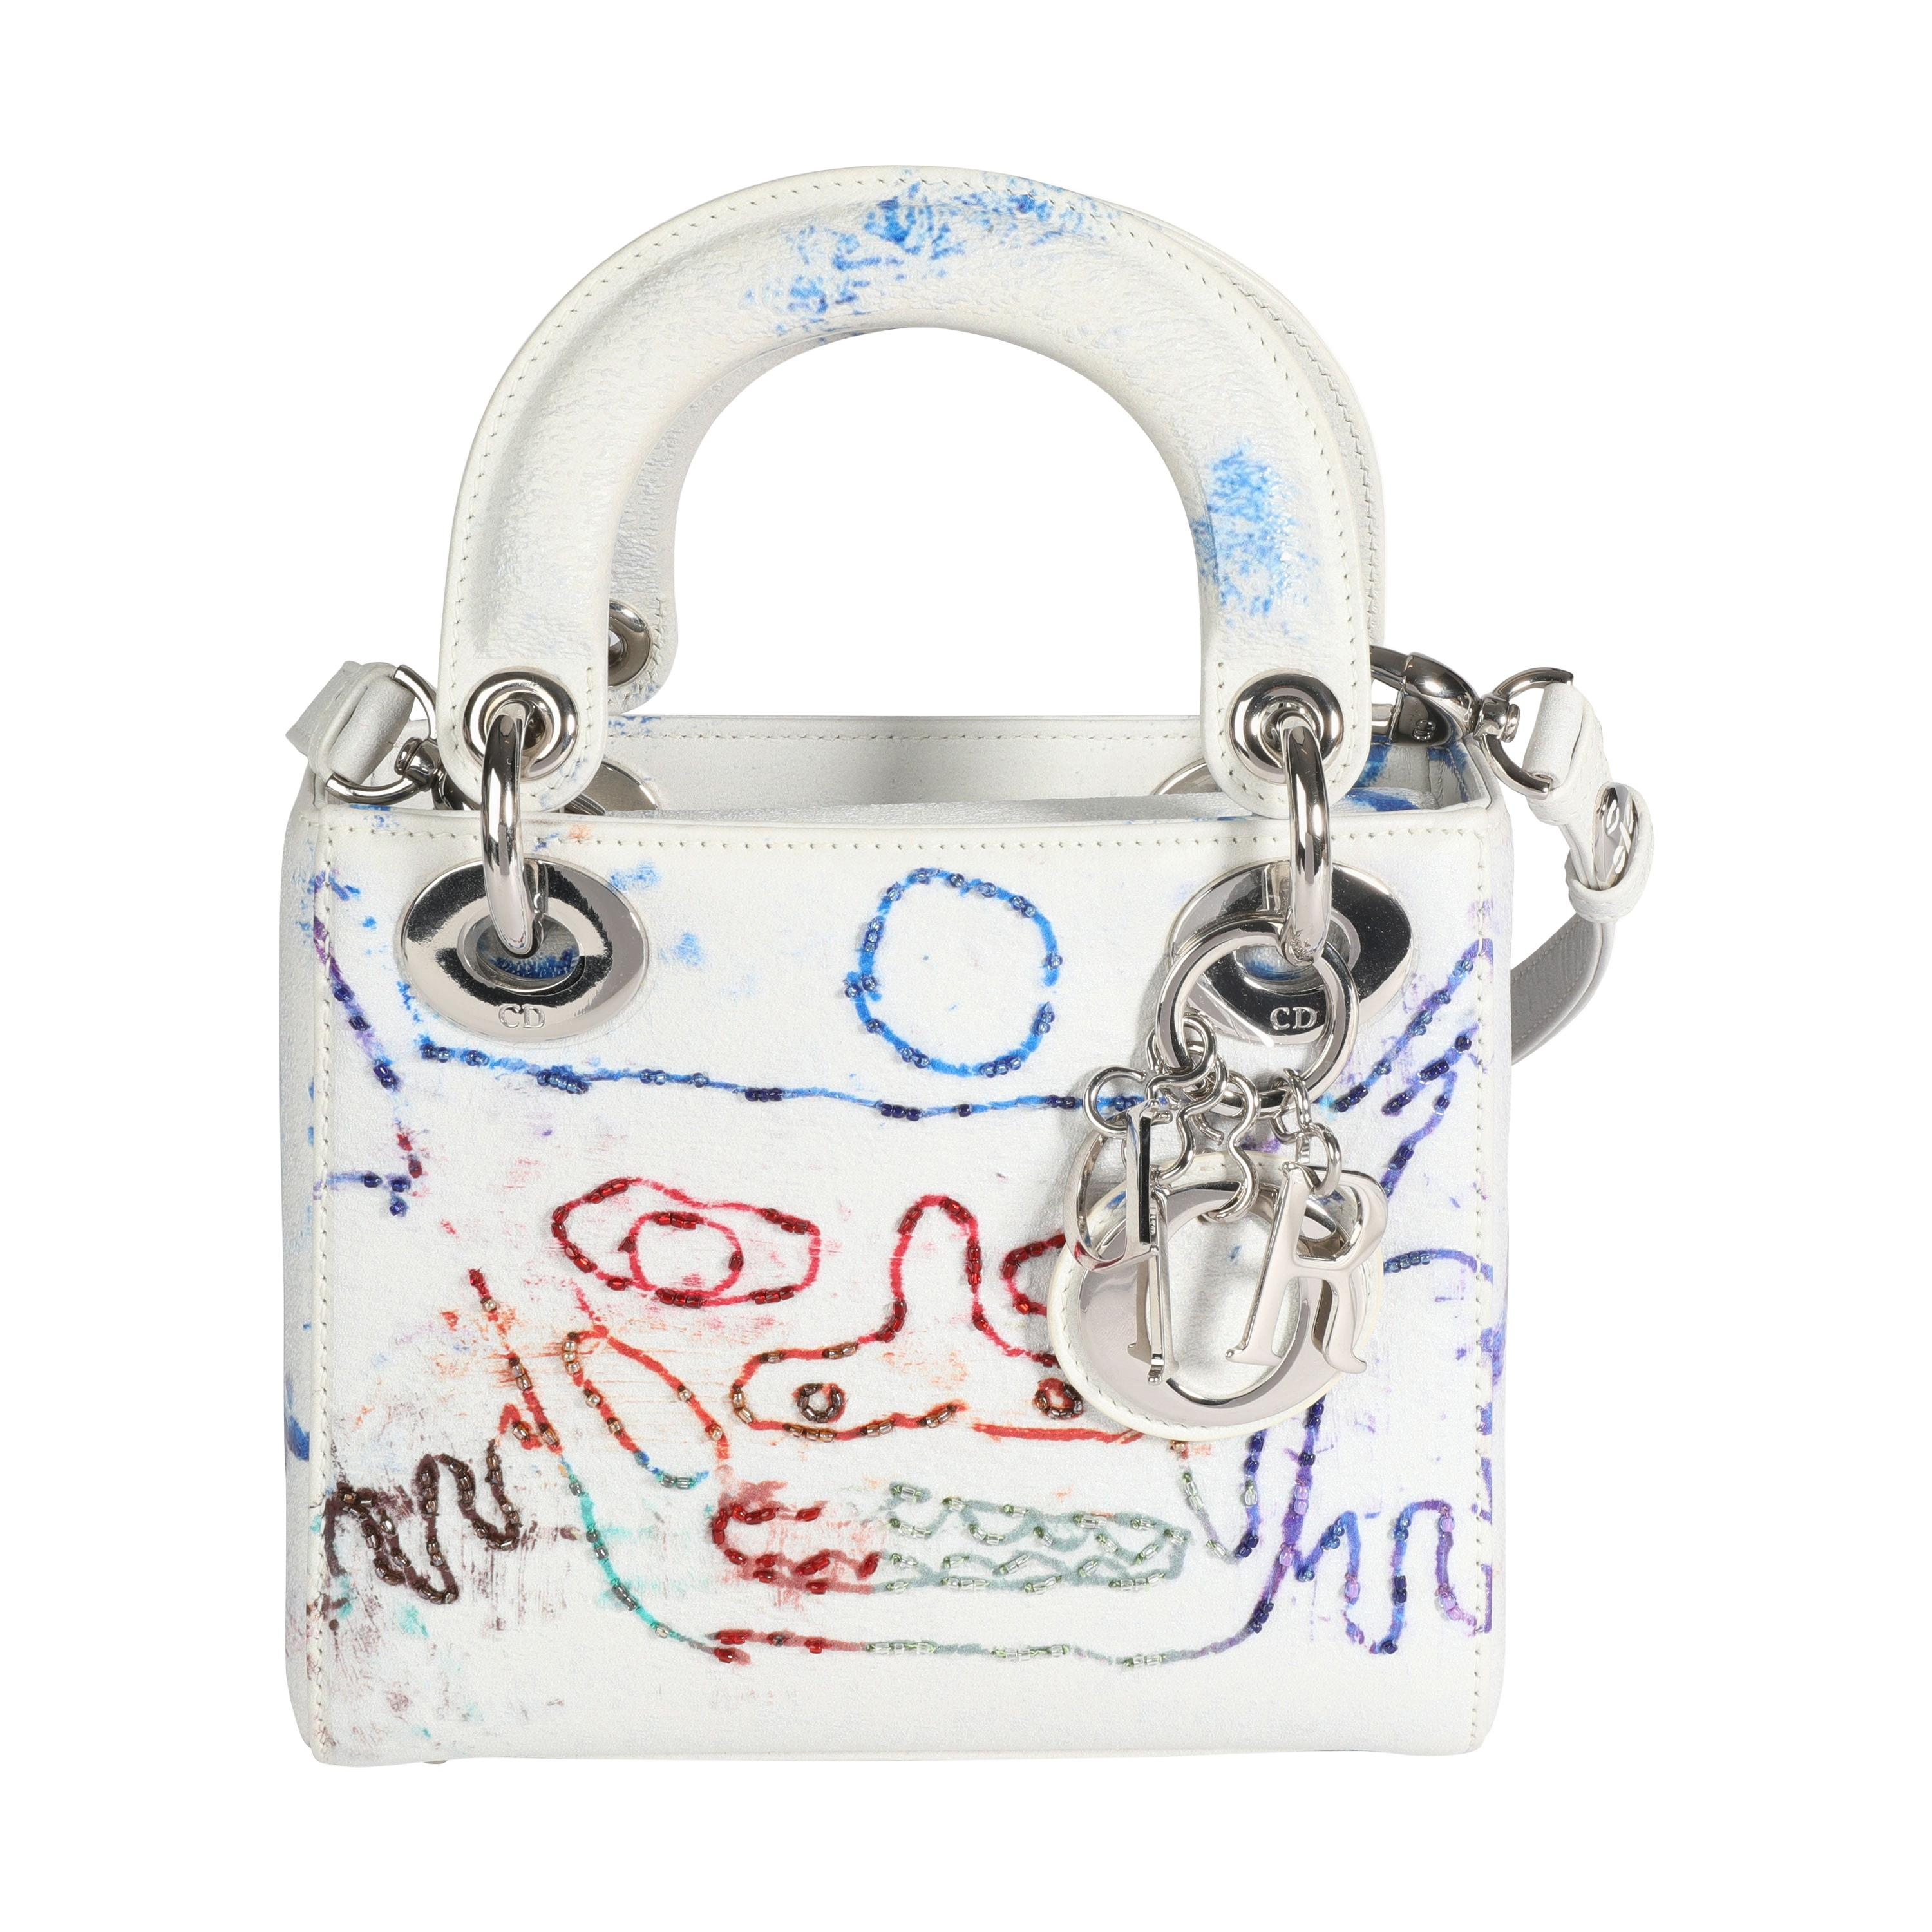 Dior X Spencer Sweeney Limited Edition Multicolor Mini Lady Dior Bag